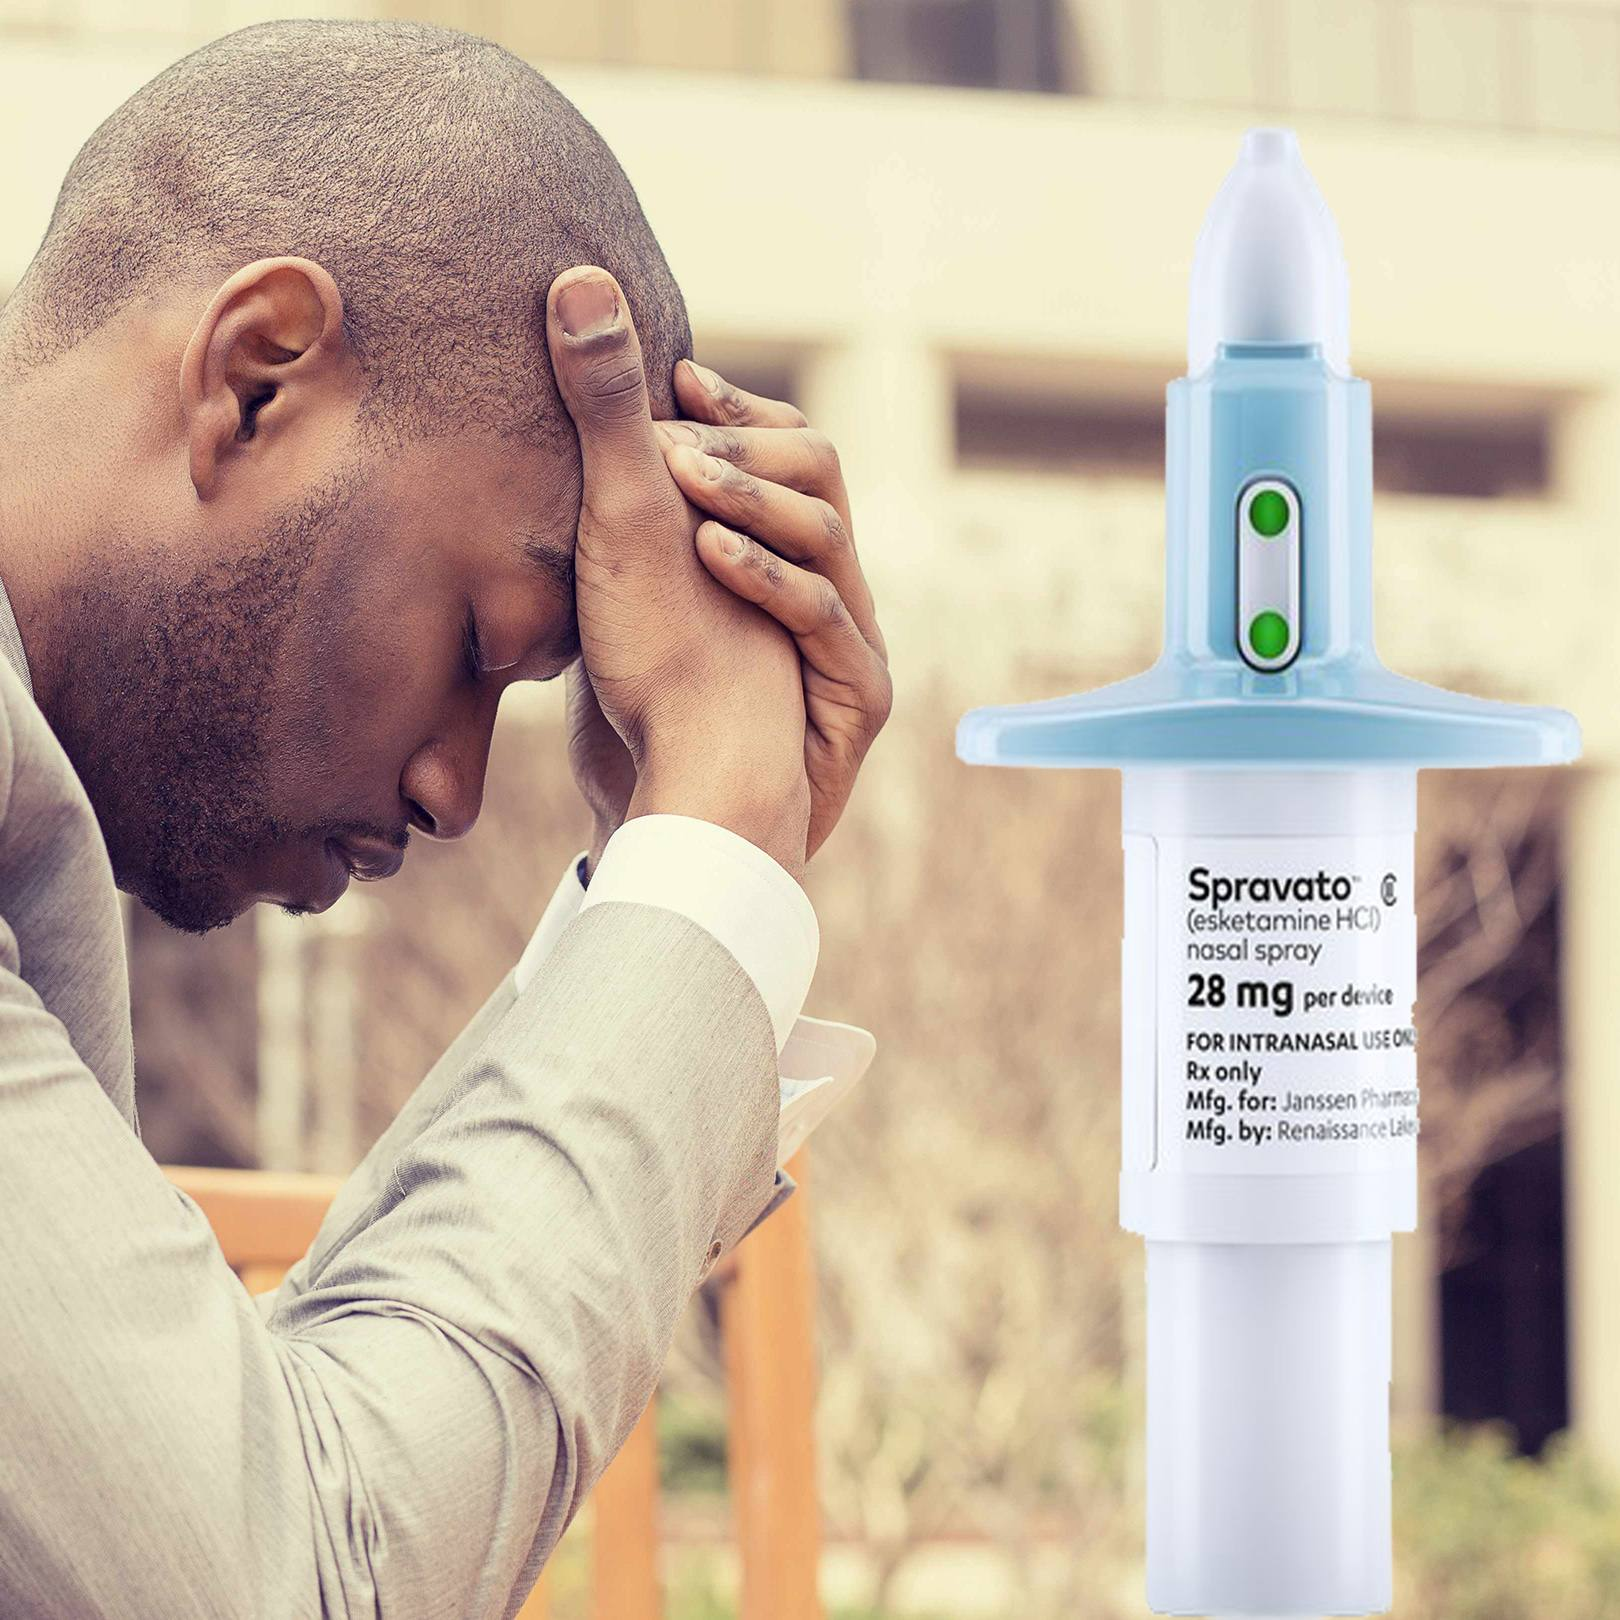 A young man with depression holds his head in his hands and a nasal spray esketamine in the foreground.